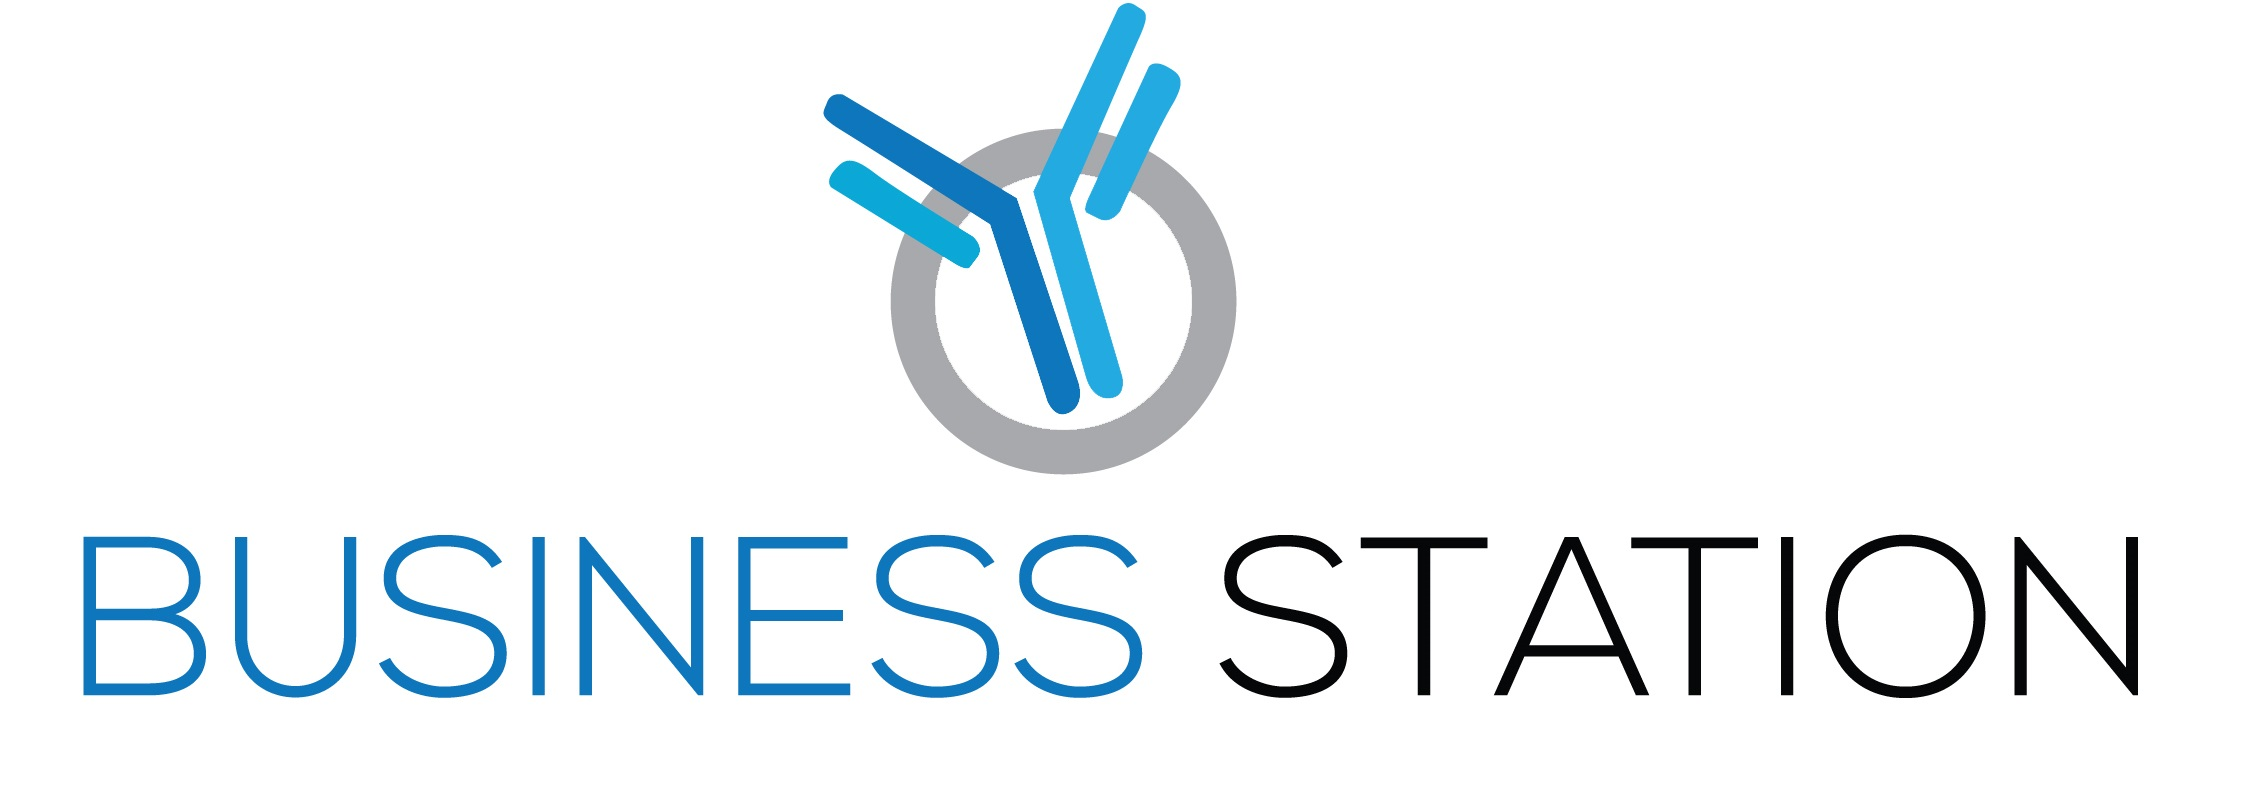 Business Station Logo